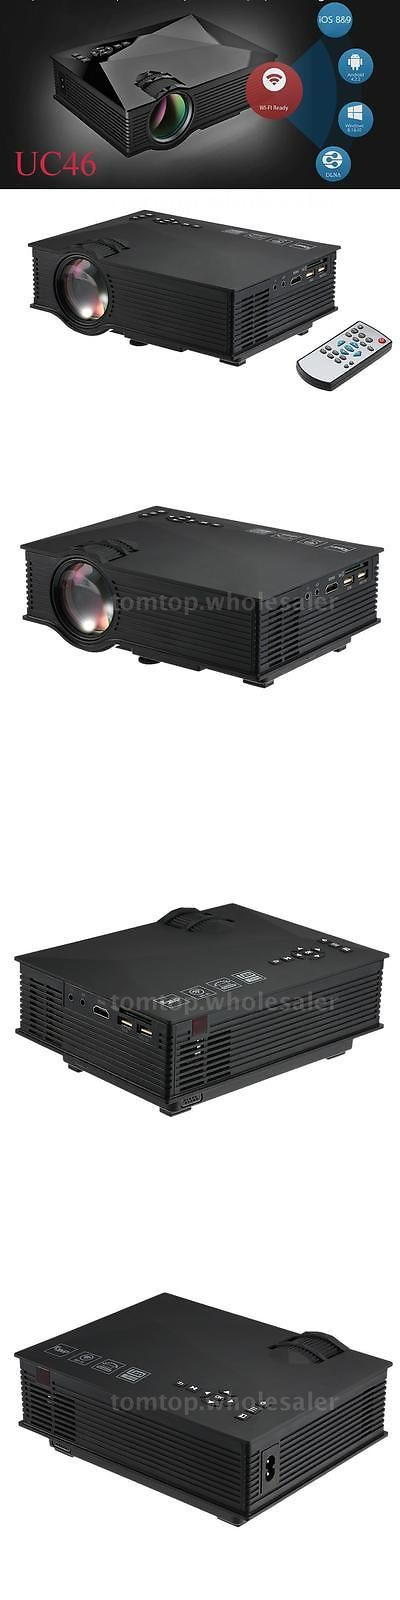 Home Theater Projectors: Uc46 Multimedia 1200Lumen Wifi Wireless Hd 1080P Projector Home Theater Hdmi Vga -> BUY IT NOW ONLY: $65.95 on eBay!